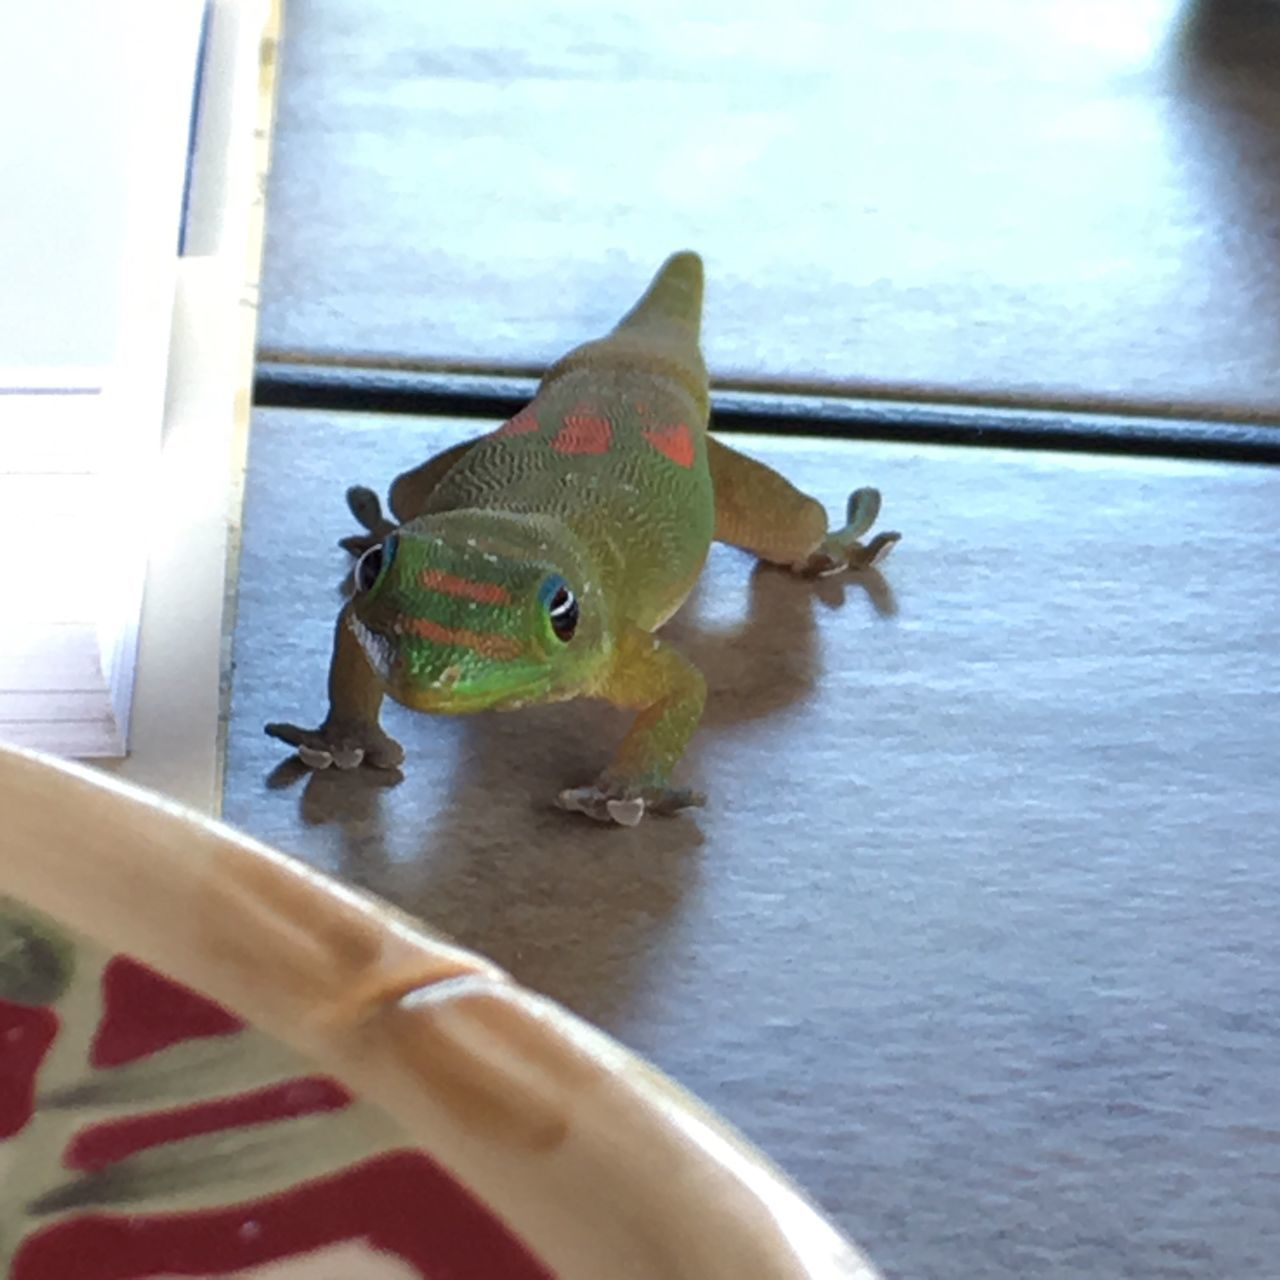 One Animal Animal Themes Close-up Day Green Color Animals In The Wild Reptile Indoors  Water Nature